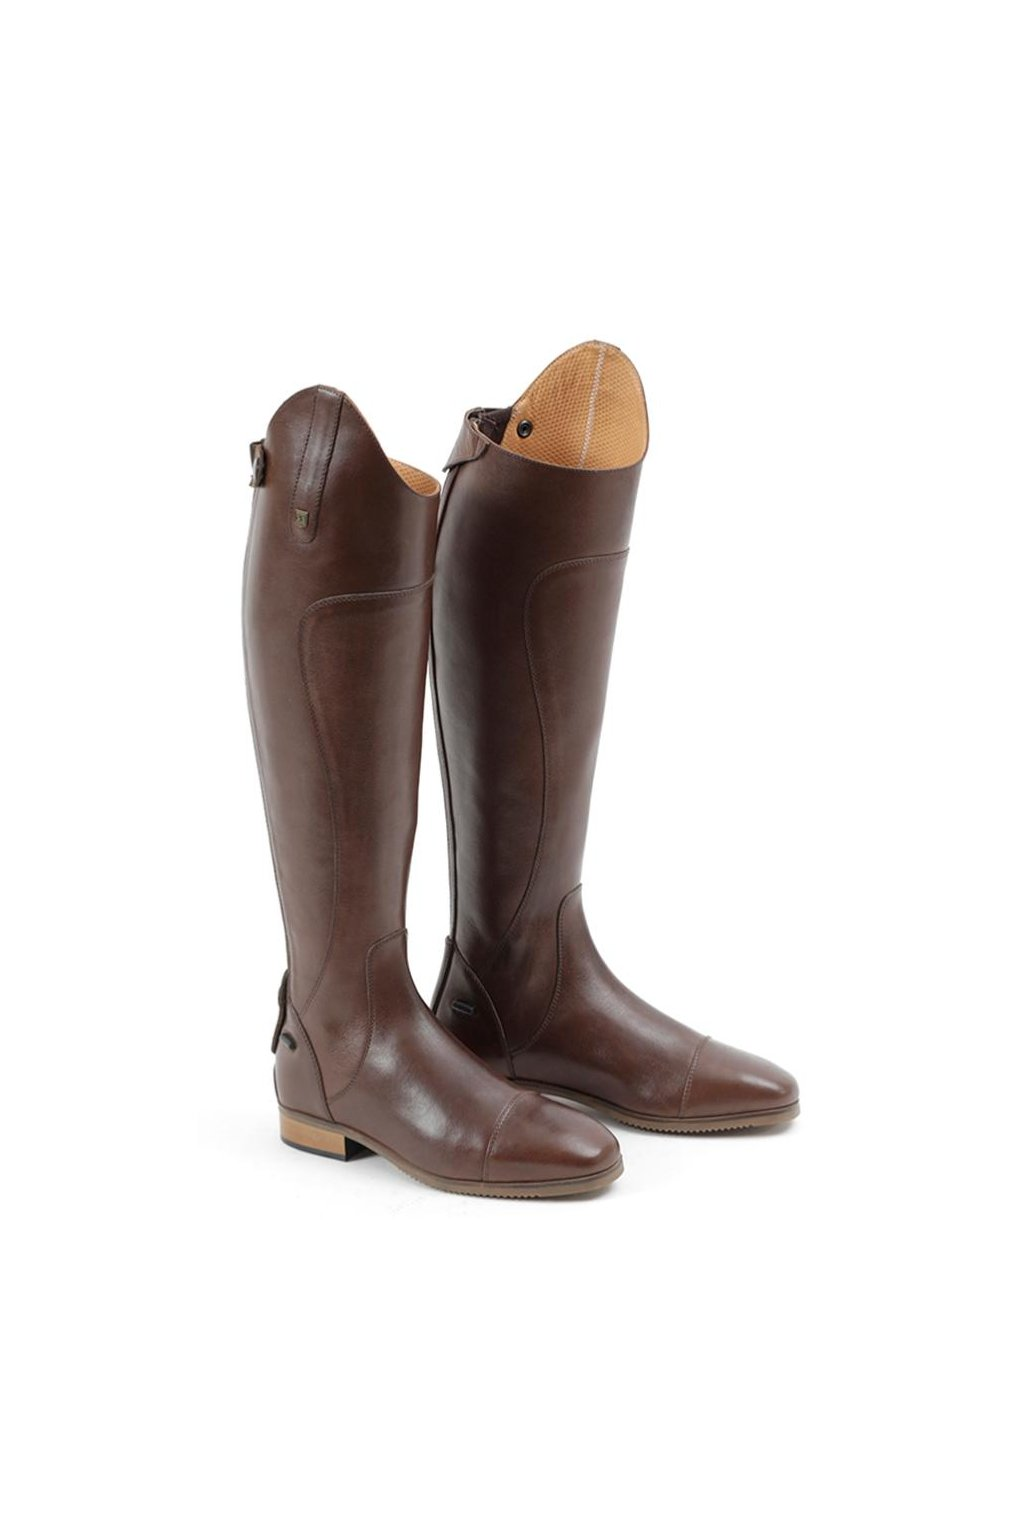 SS19 Mazziano Leather Riding Boot Brown Main Image RGB 72 zoom